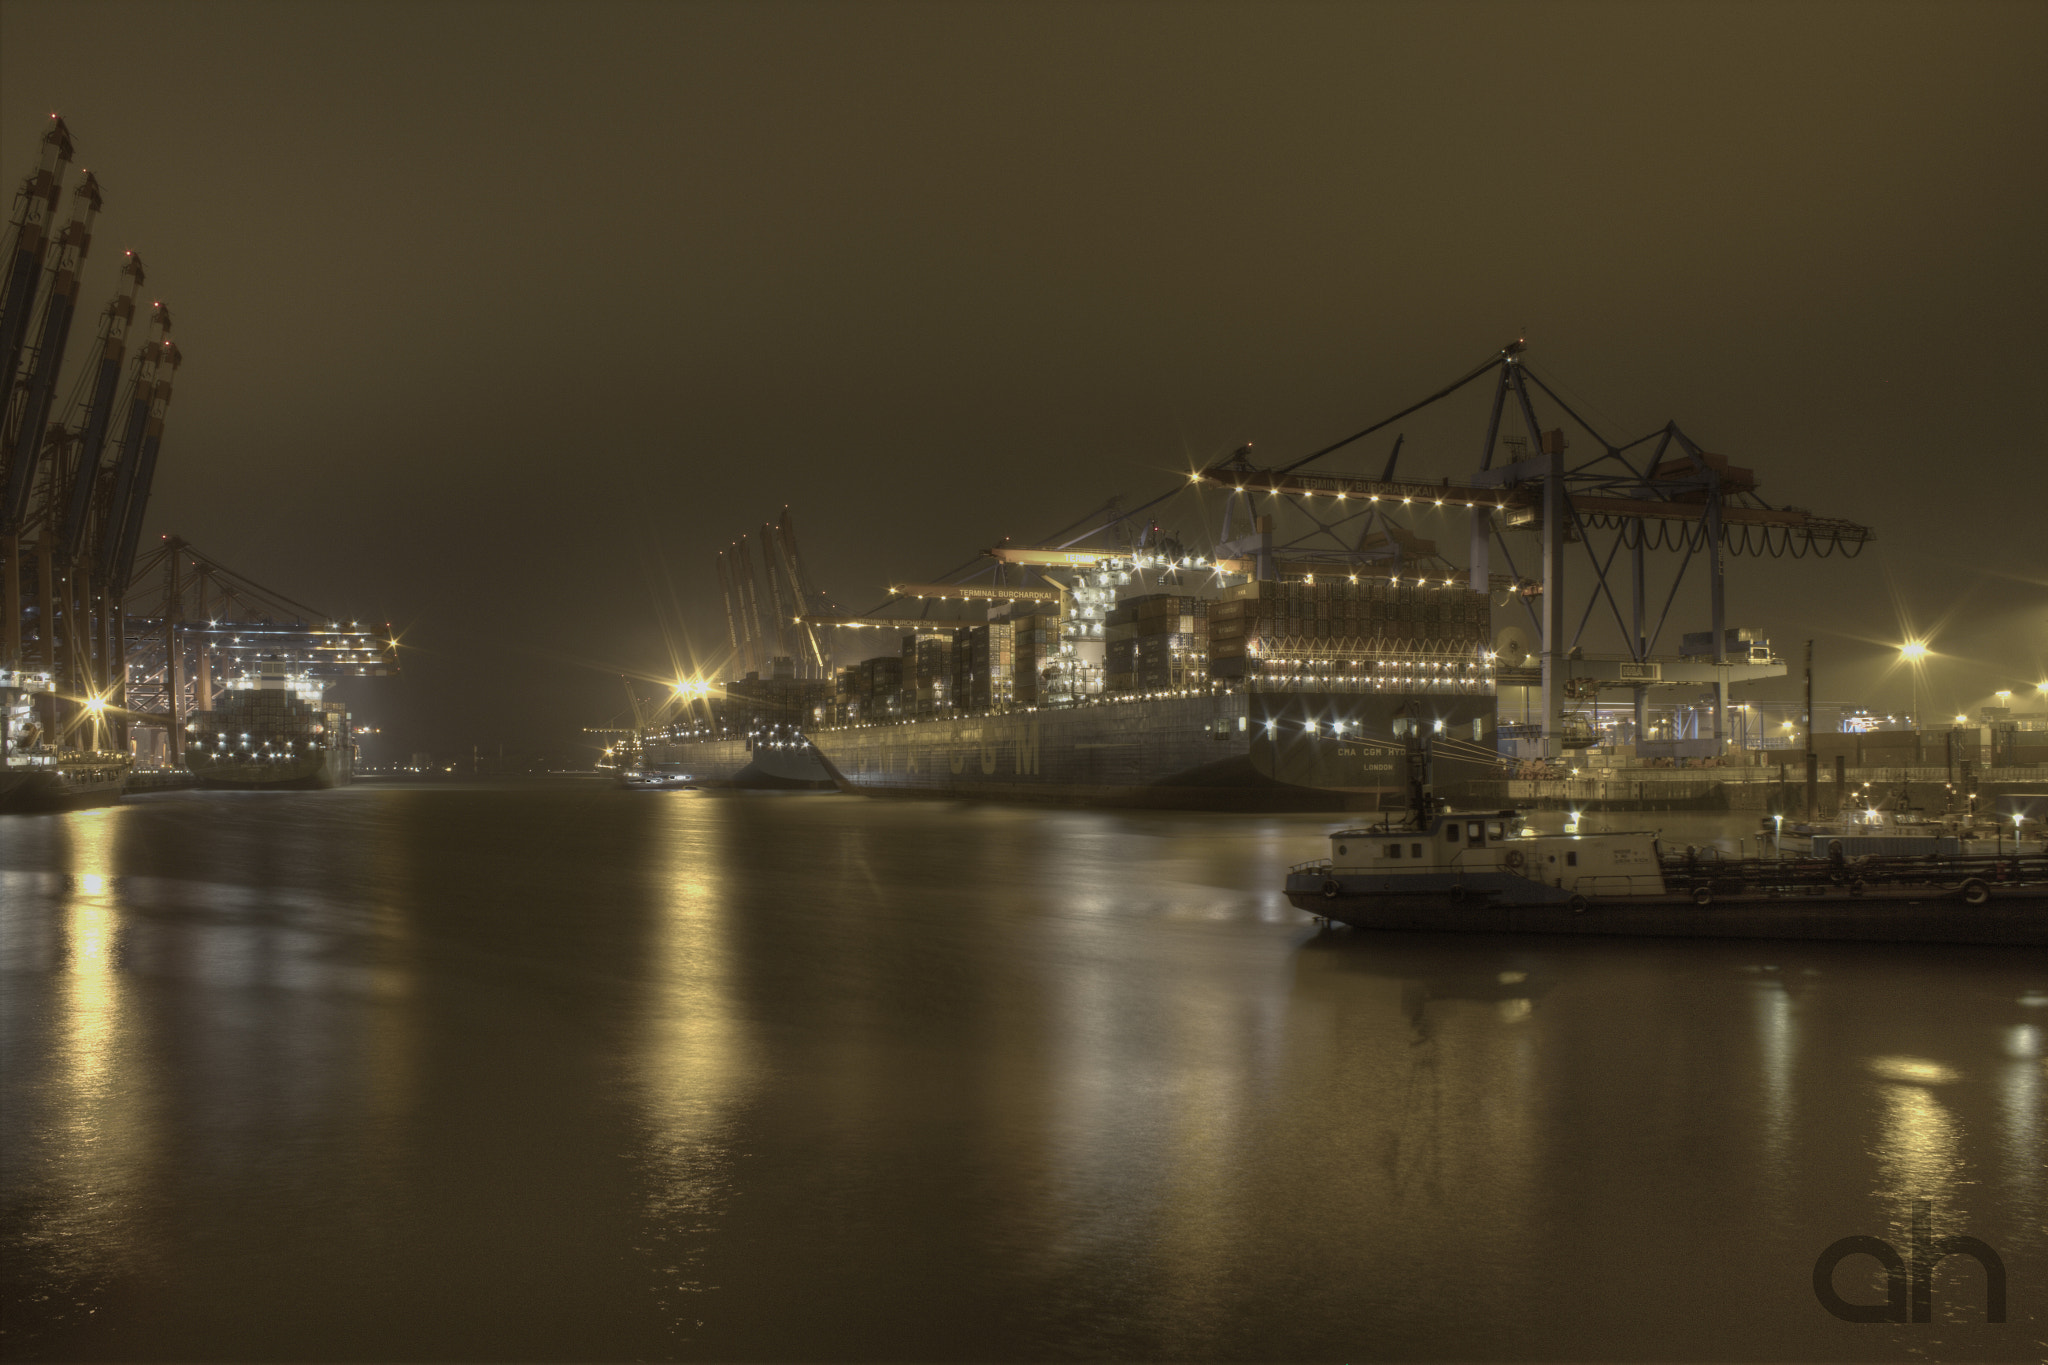 Photograph Ship port-1 by Andraes Hof on 500px